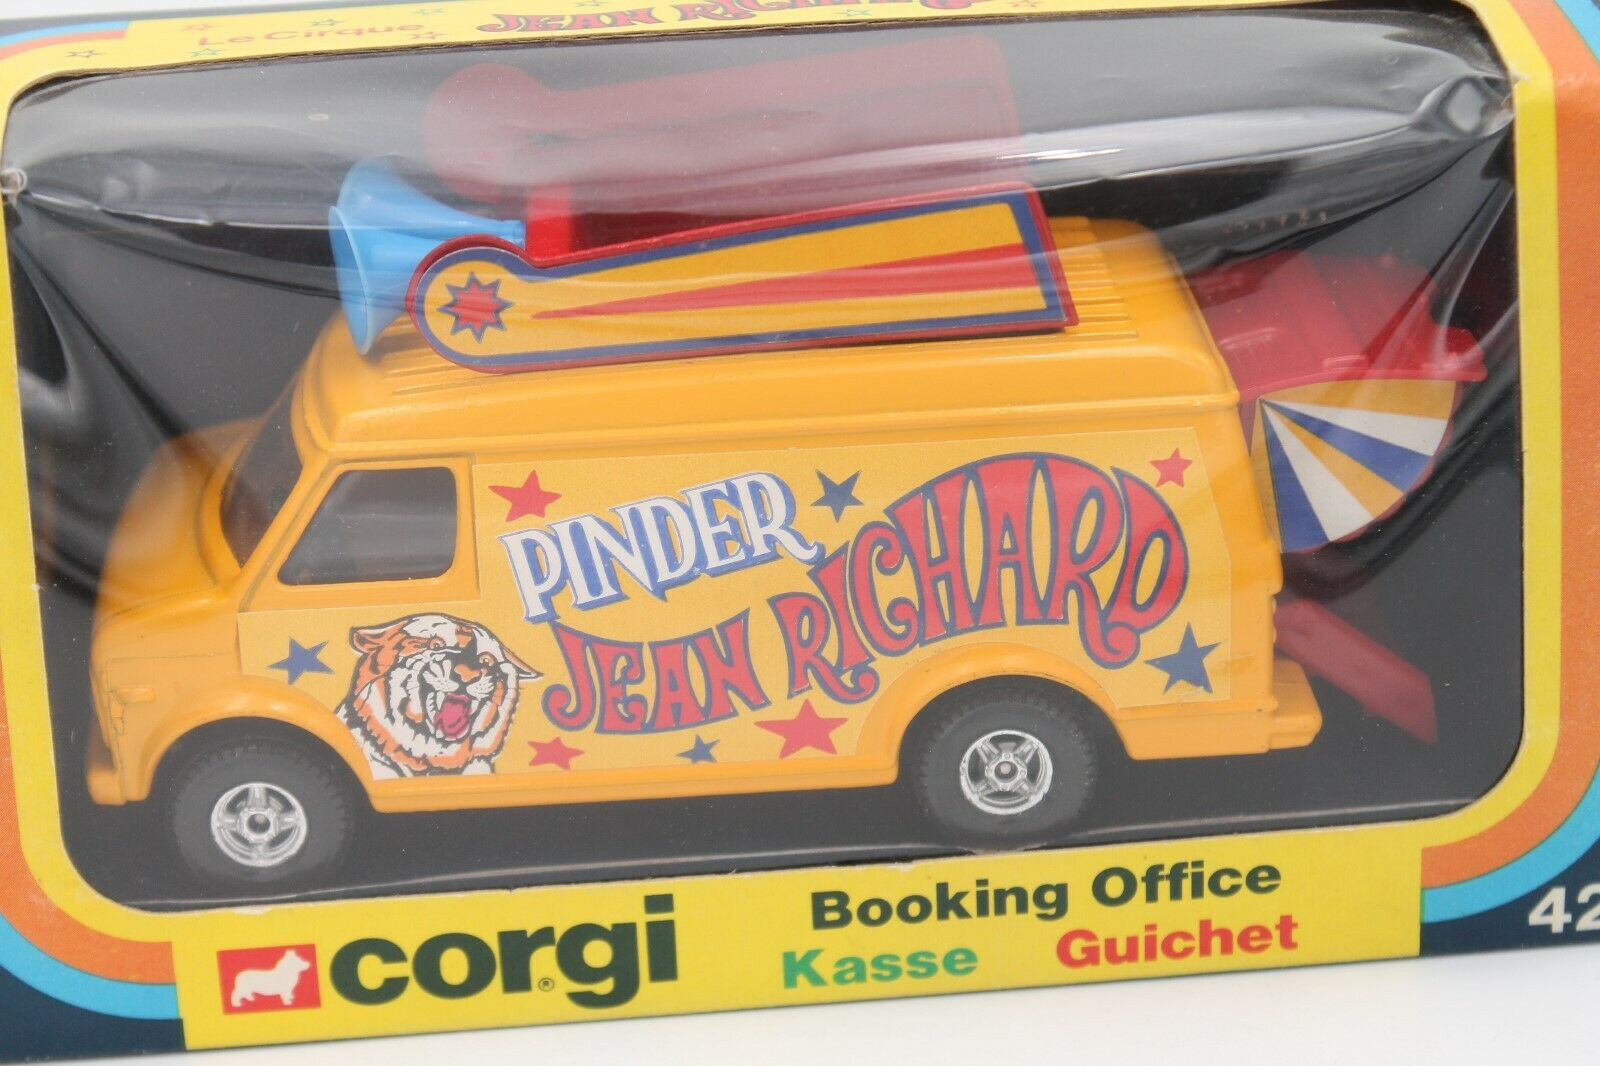 CORGI TOYS  PINDER RICHARD CIRCUS  CHEVROLET BOOKING OFFICE  OVP  MINT